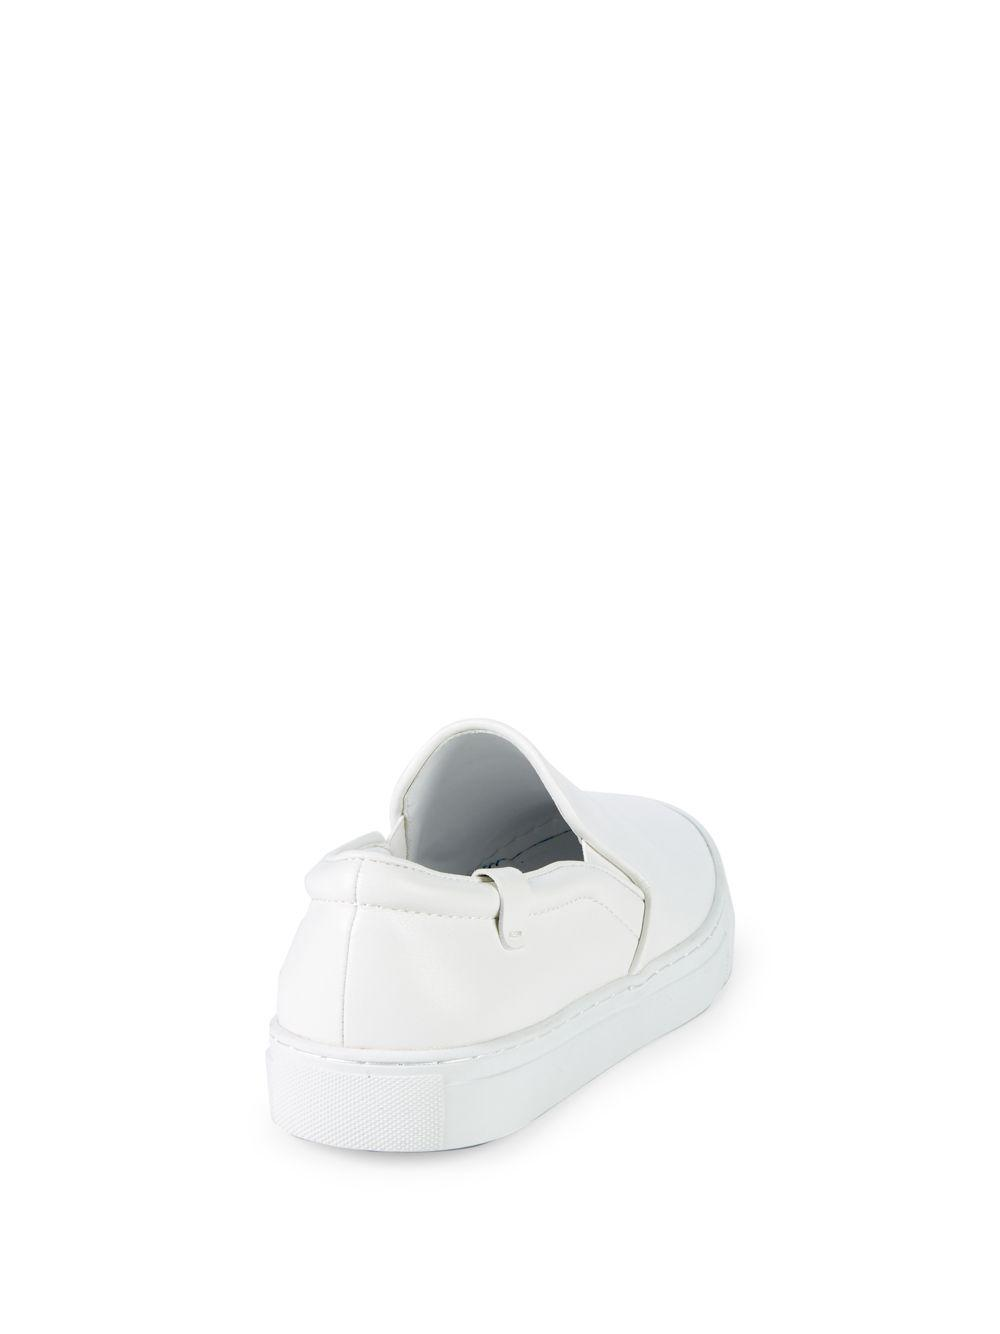 Lyst - House of Future Original Leather Slip-on Sneakers in White ... 6bb6926b5